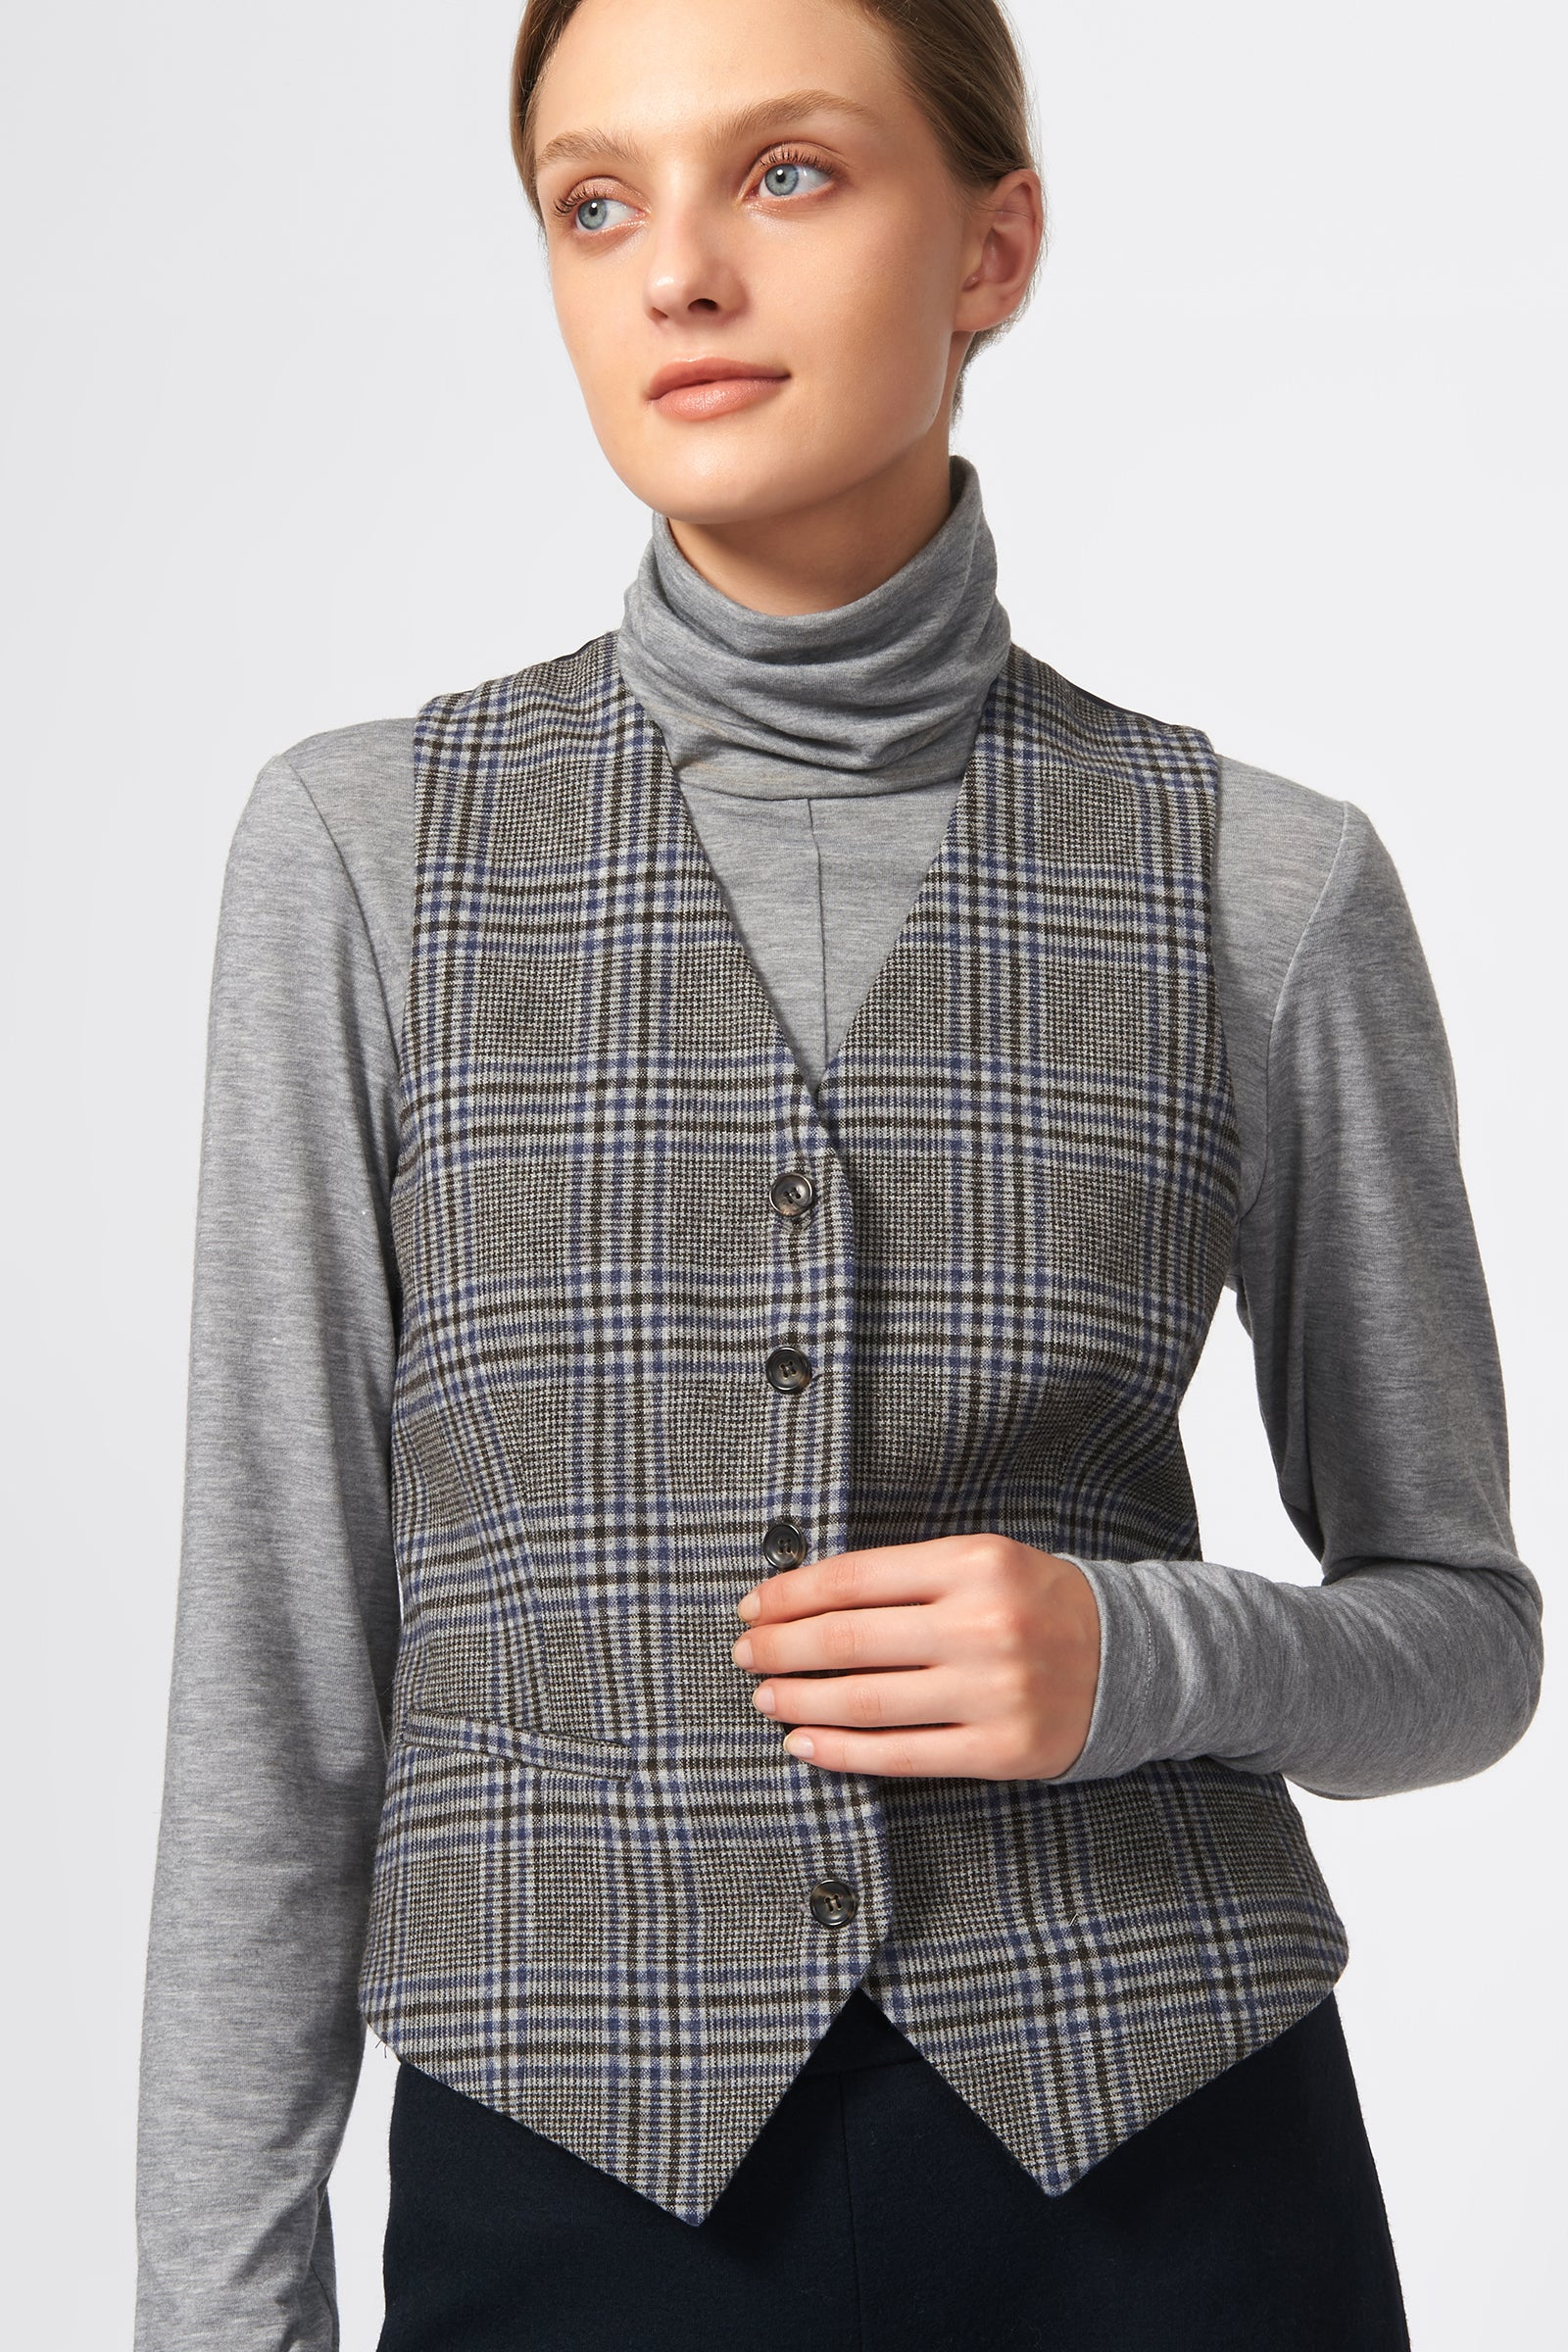 Kal Rieman Classic Tailored Vest in Grey Plaid on Model Front View